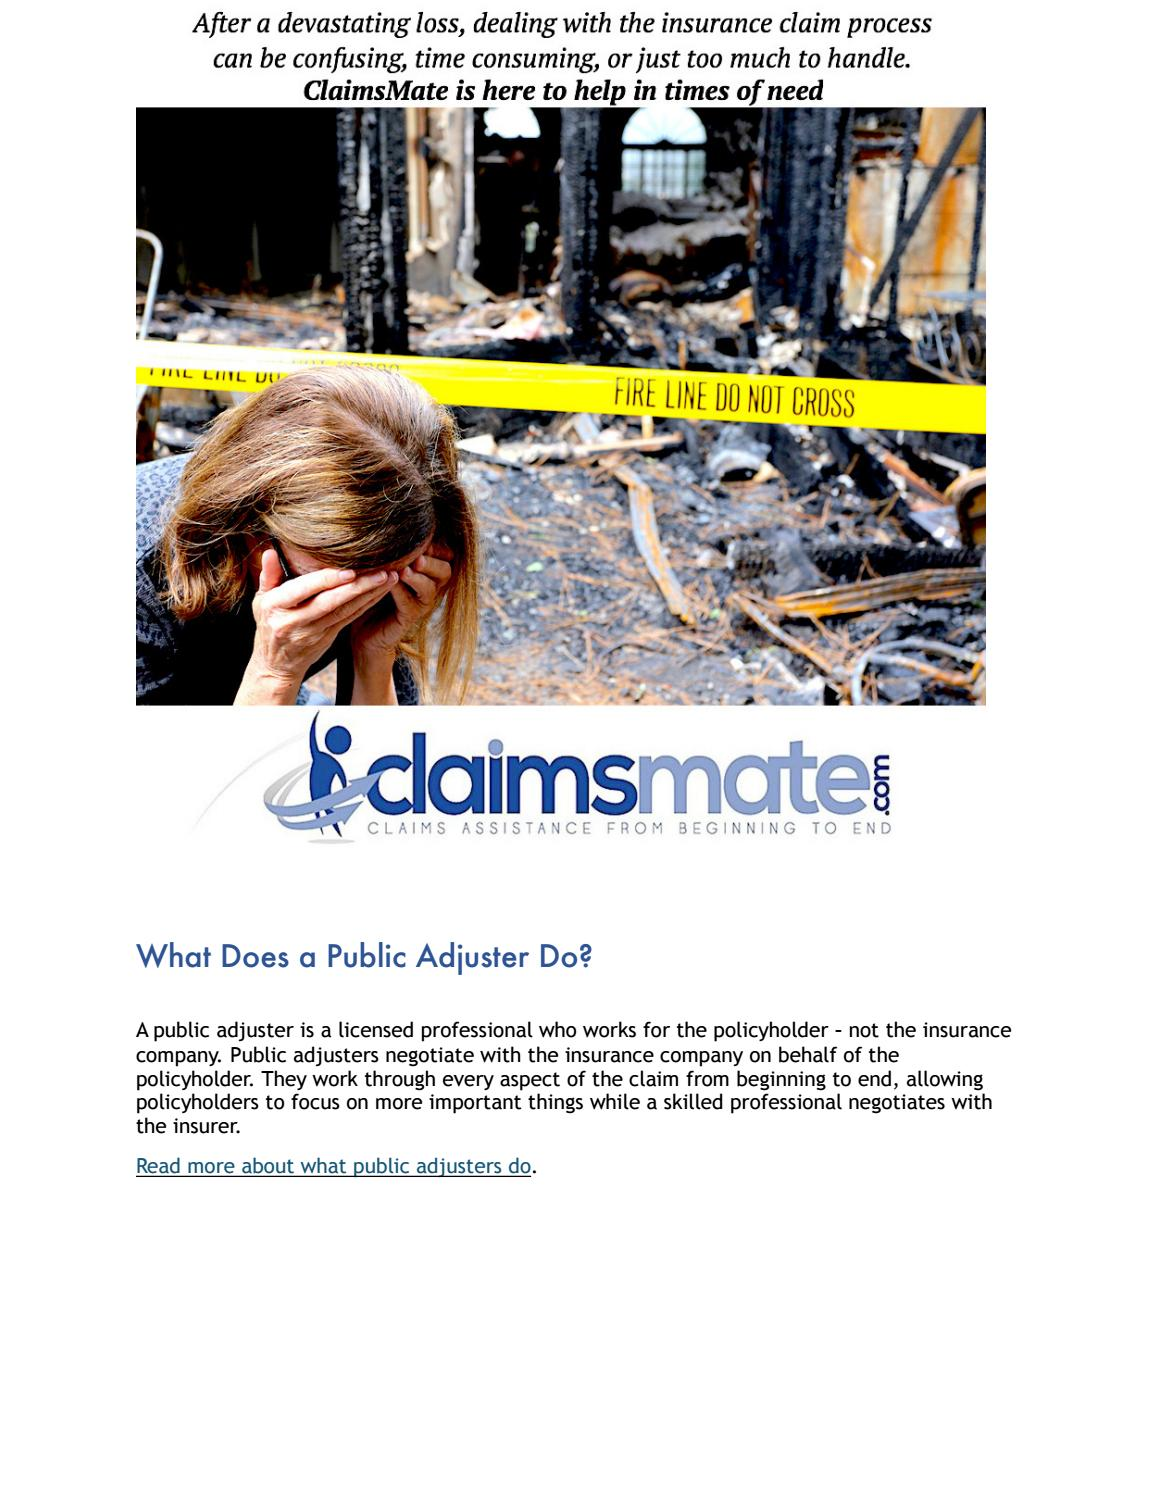 What Does A Public Adjuster Do?